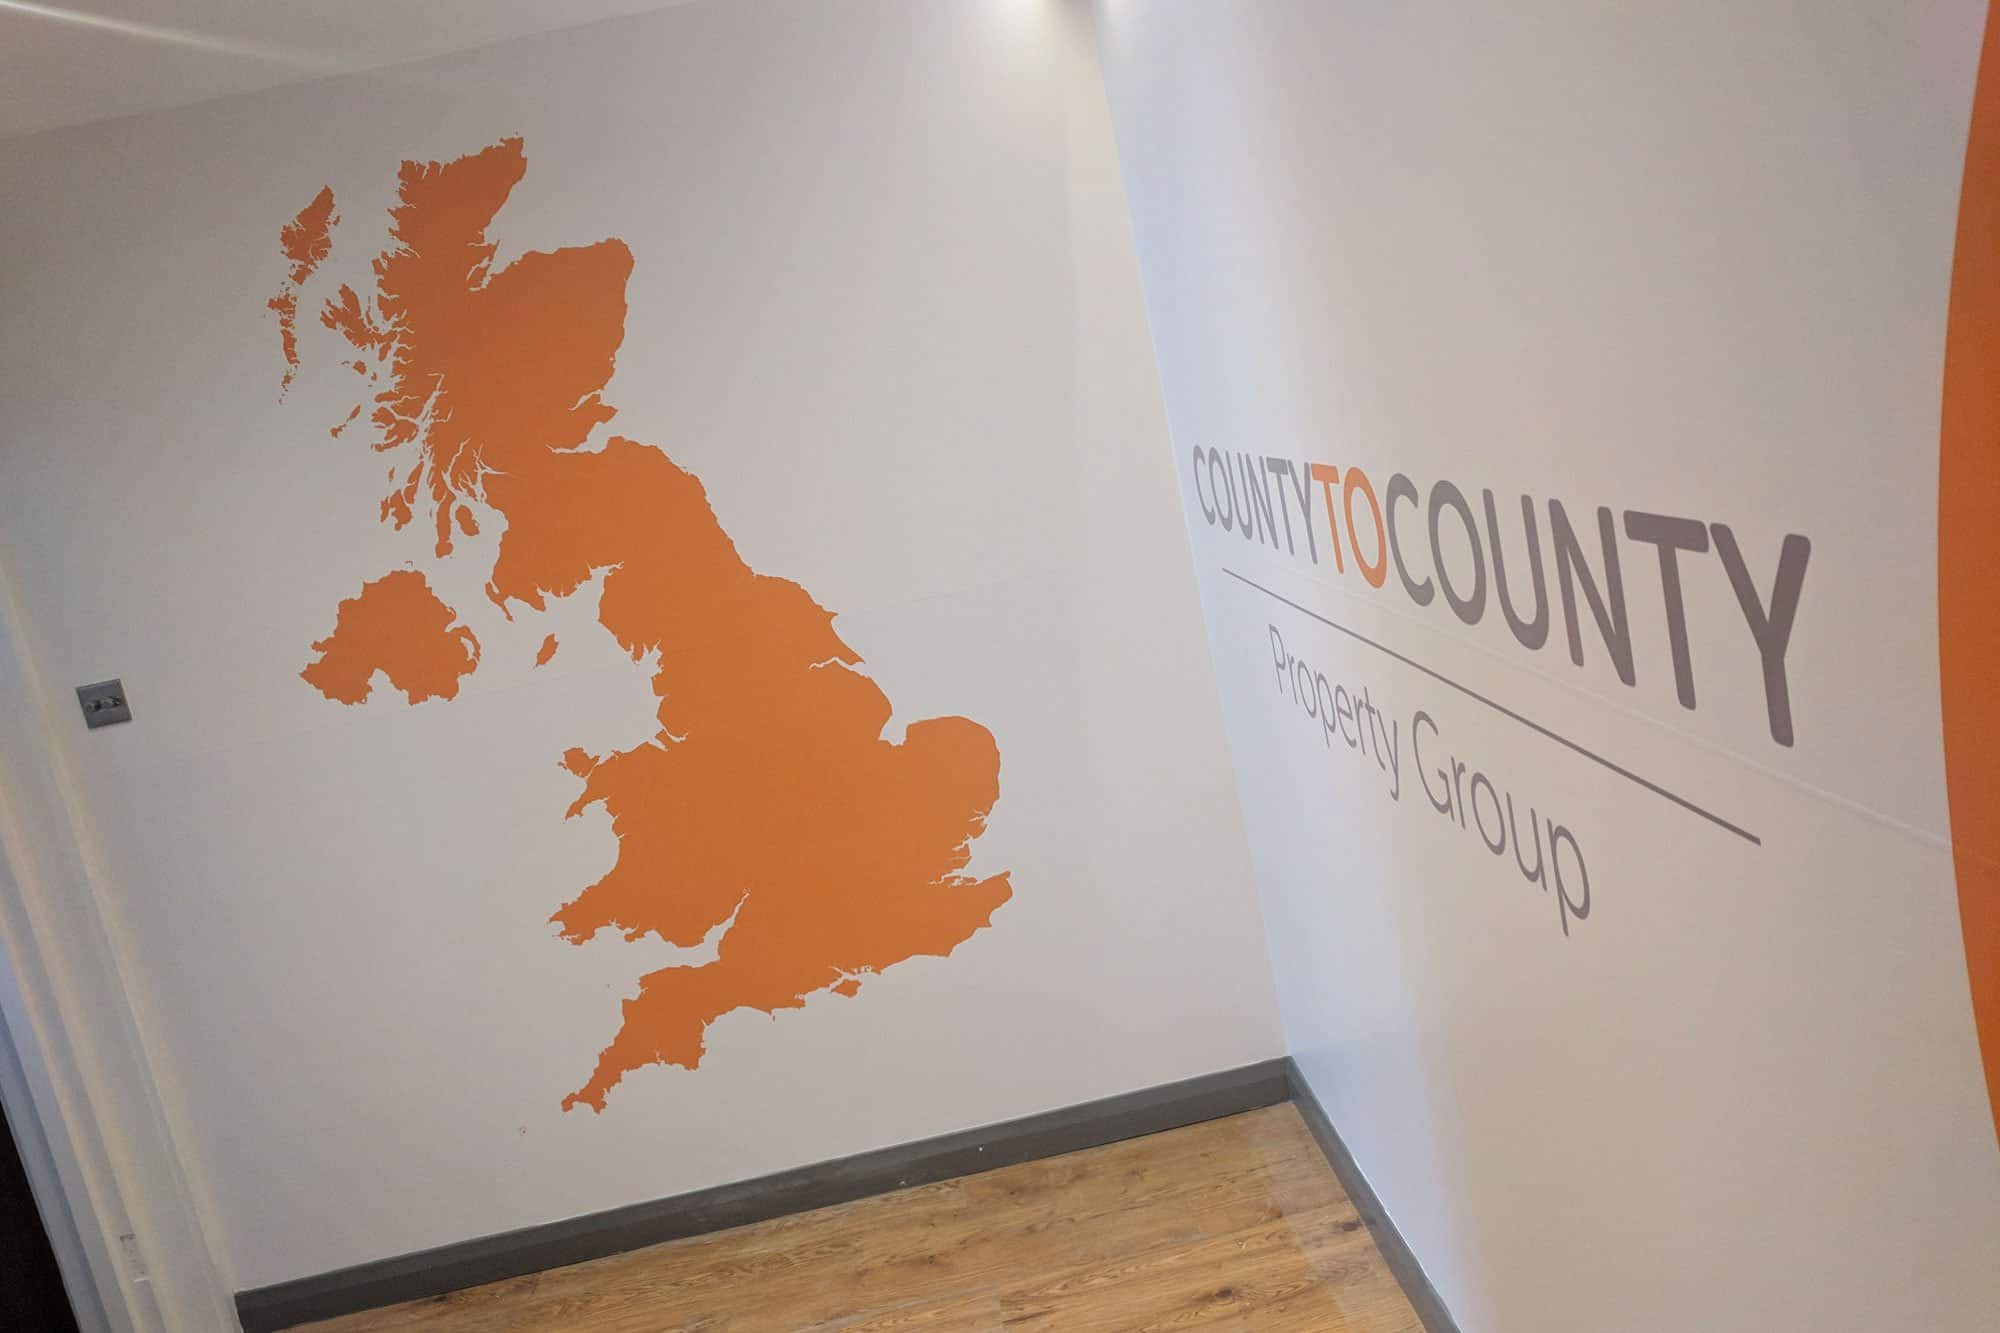 County to County Wall Graphics